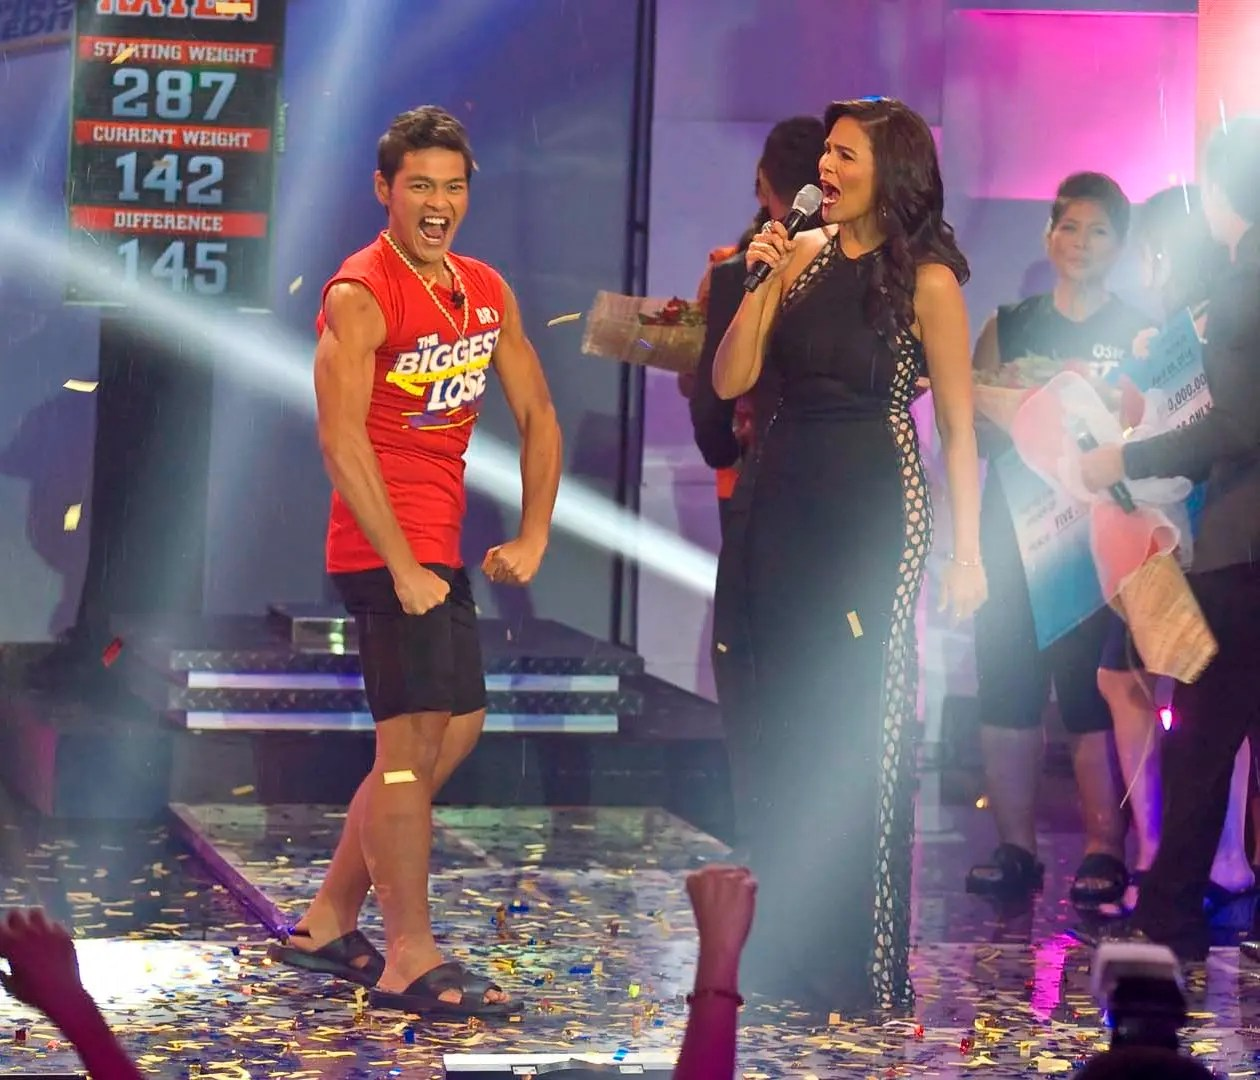 chair gym weight loss ki design bryan castillo lost more than half of initial weight, wins pinoy biggest loser | starmometer